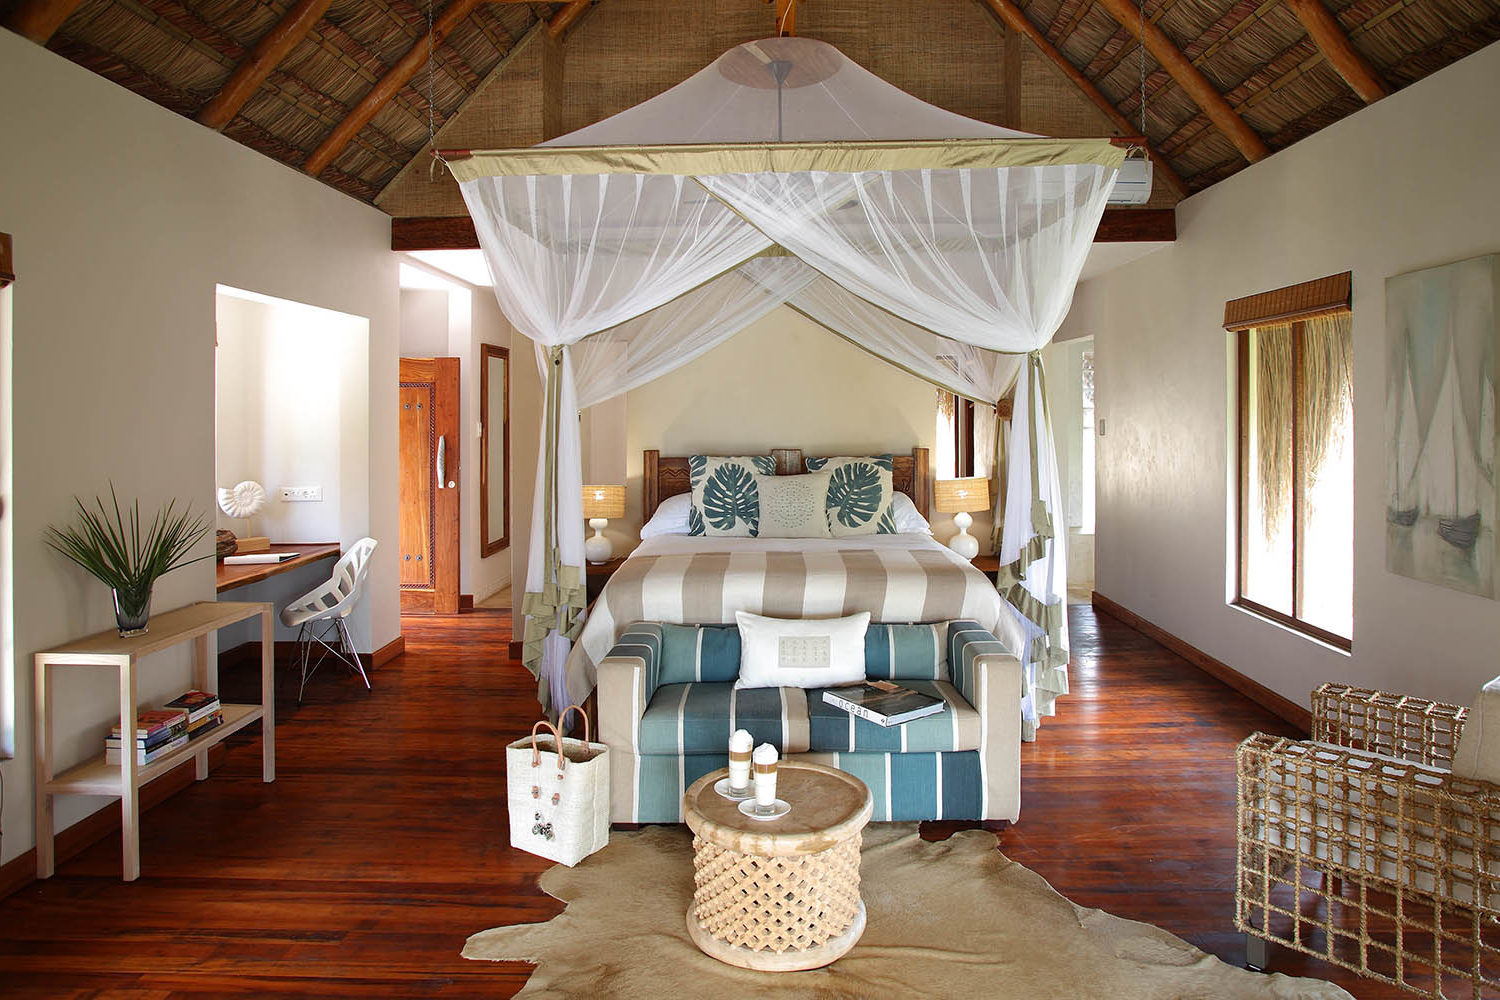 azura benguerra mozambique-lodges-zambia-in-style-ultimate-beach-experiences-paradise-infinity-villa-interior-delicious-monster